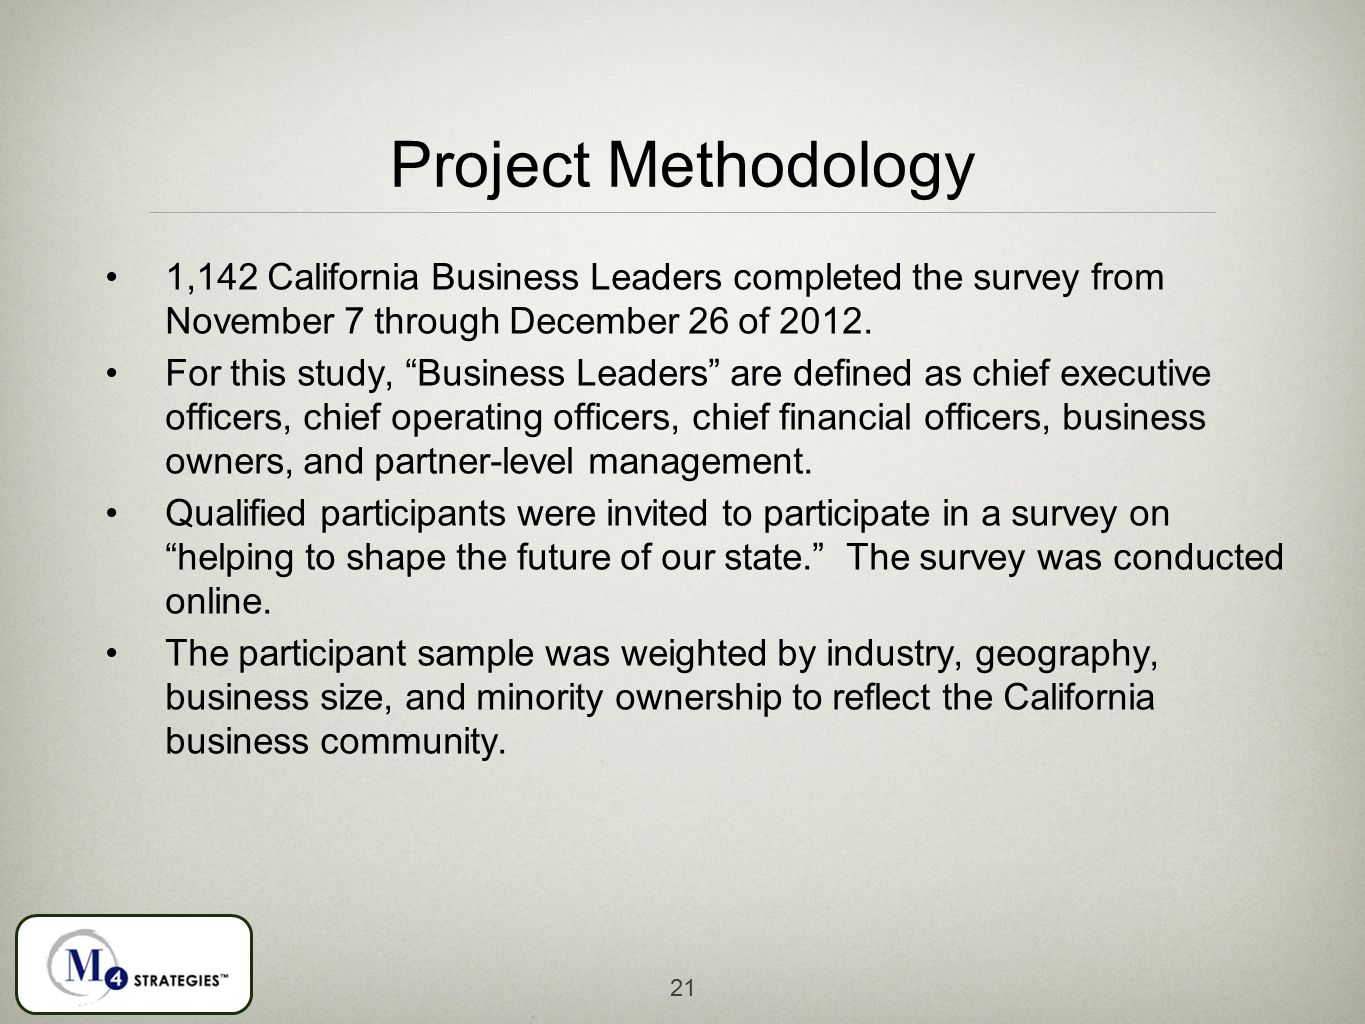 21 Project Methodology 1,142 California Business Leaders completed the survey from November 7 through December 26 of 2012.